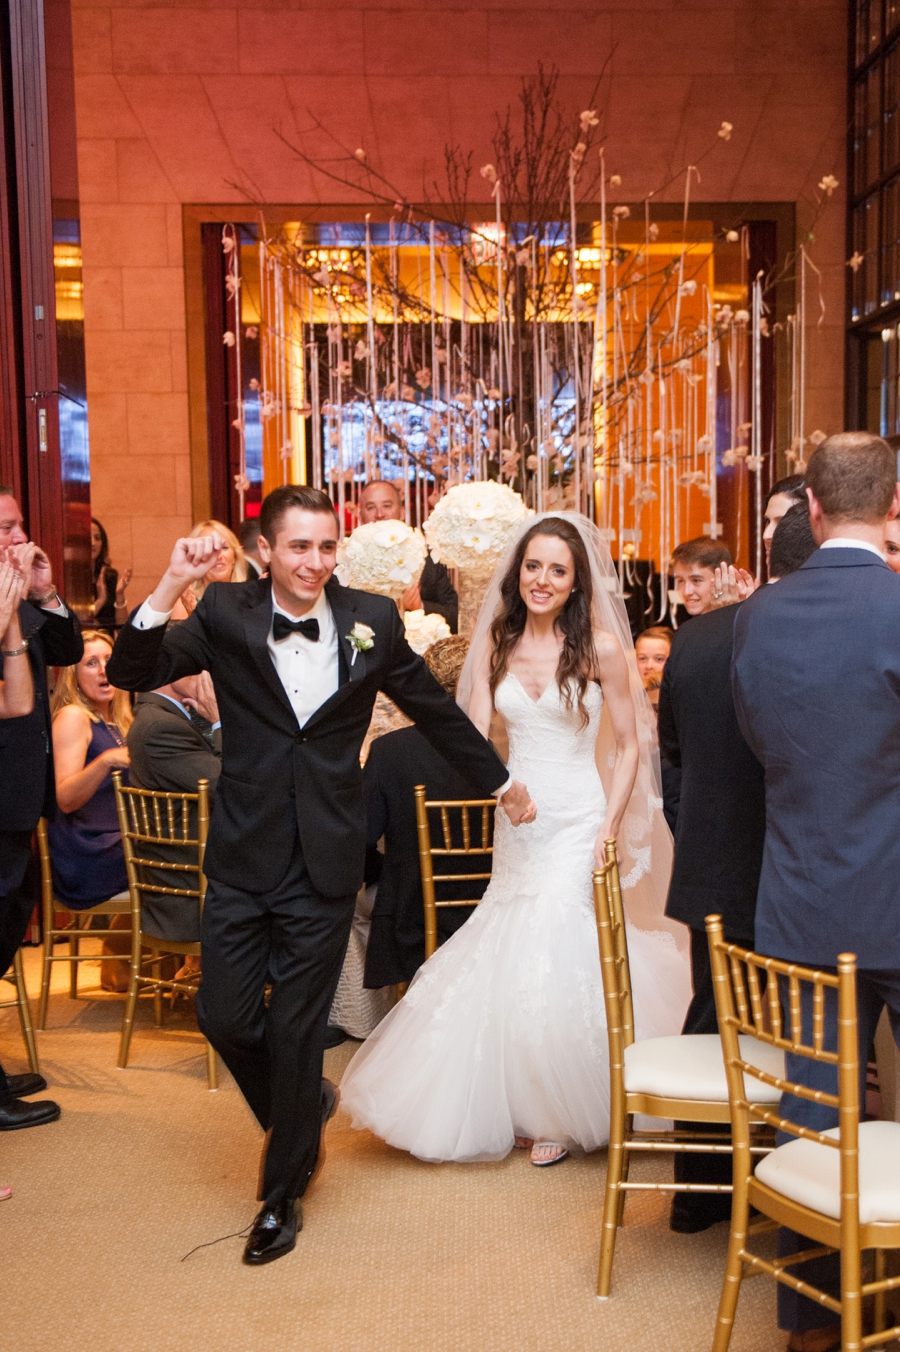 KR_FOUR_SEASONS_NYC_WEDDING_035.jpg